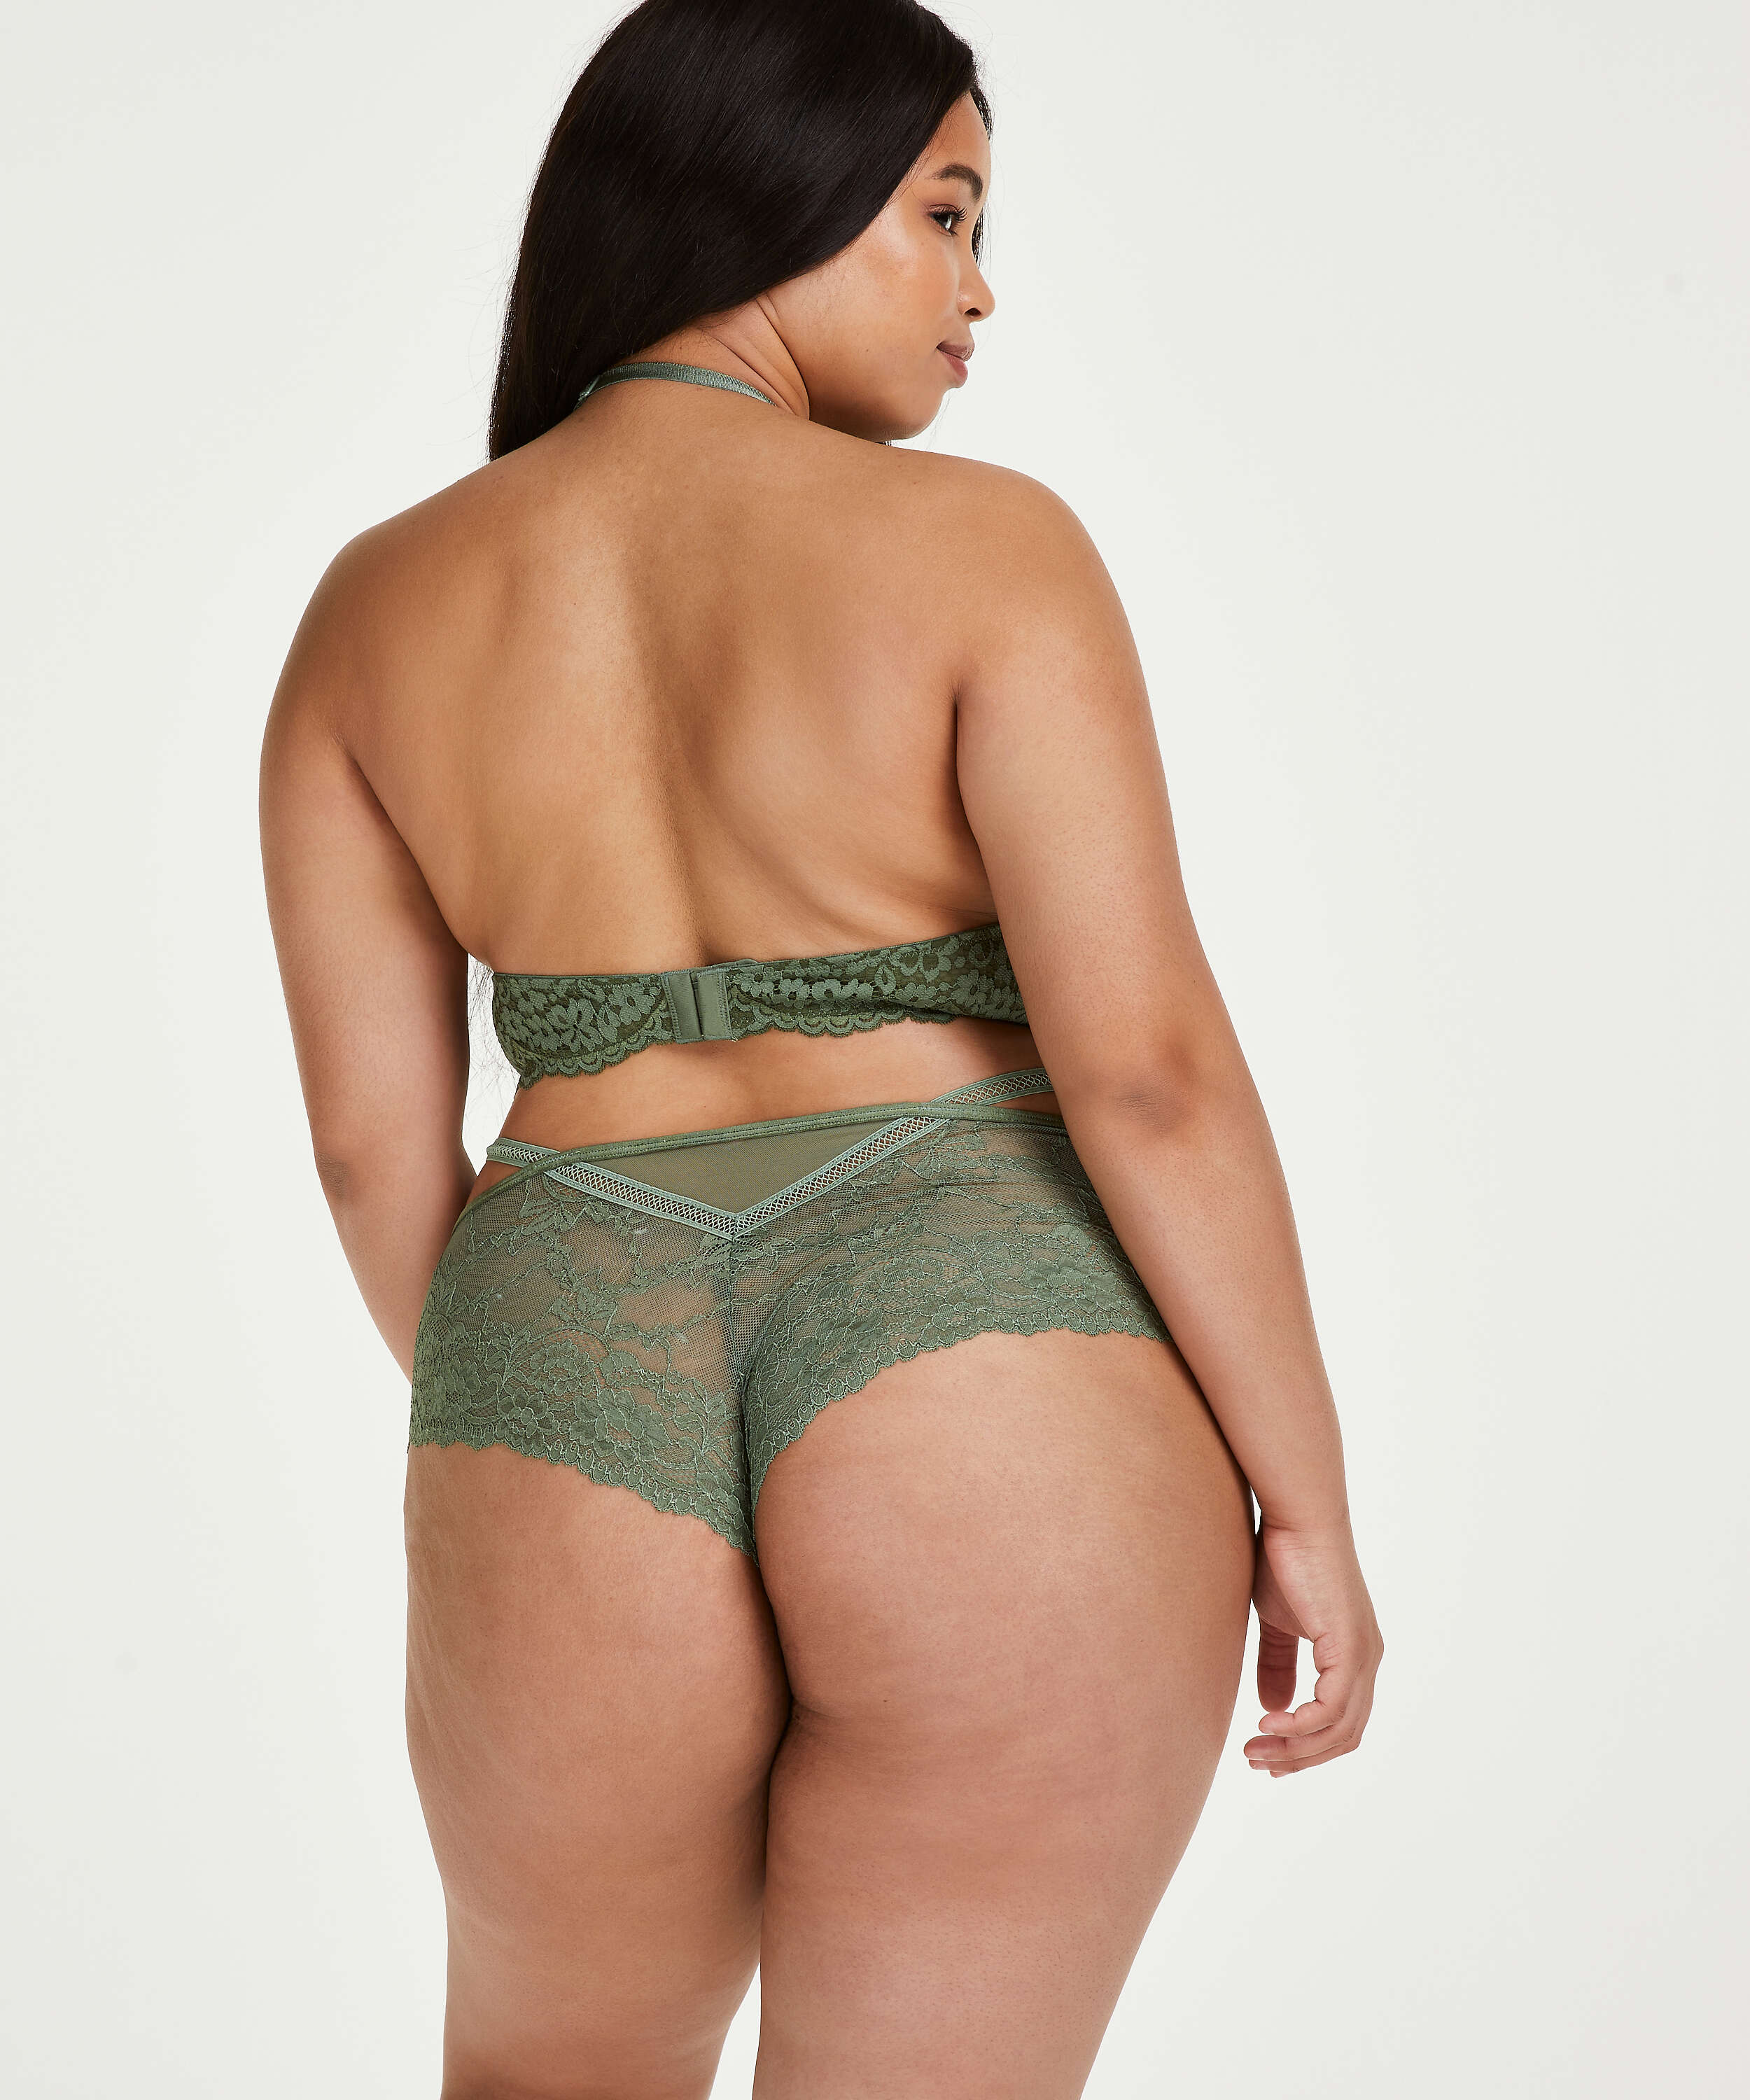 Kami Brazilian Curvy, Green, main